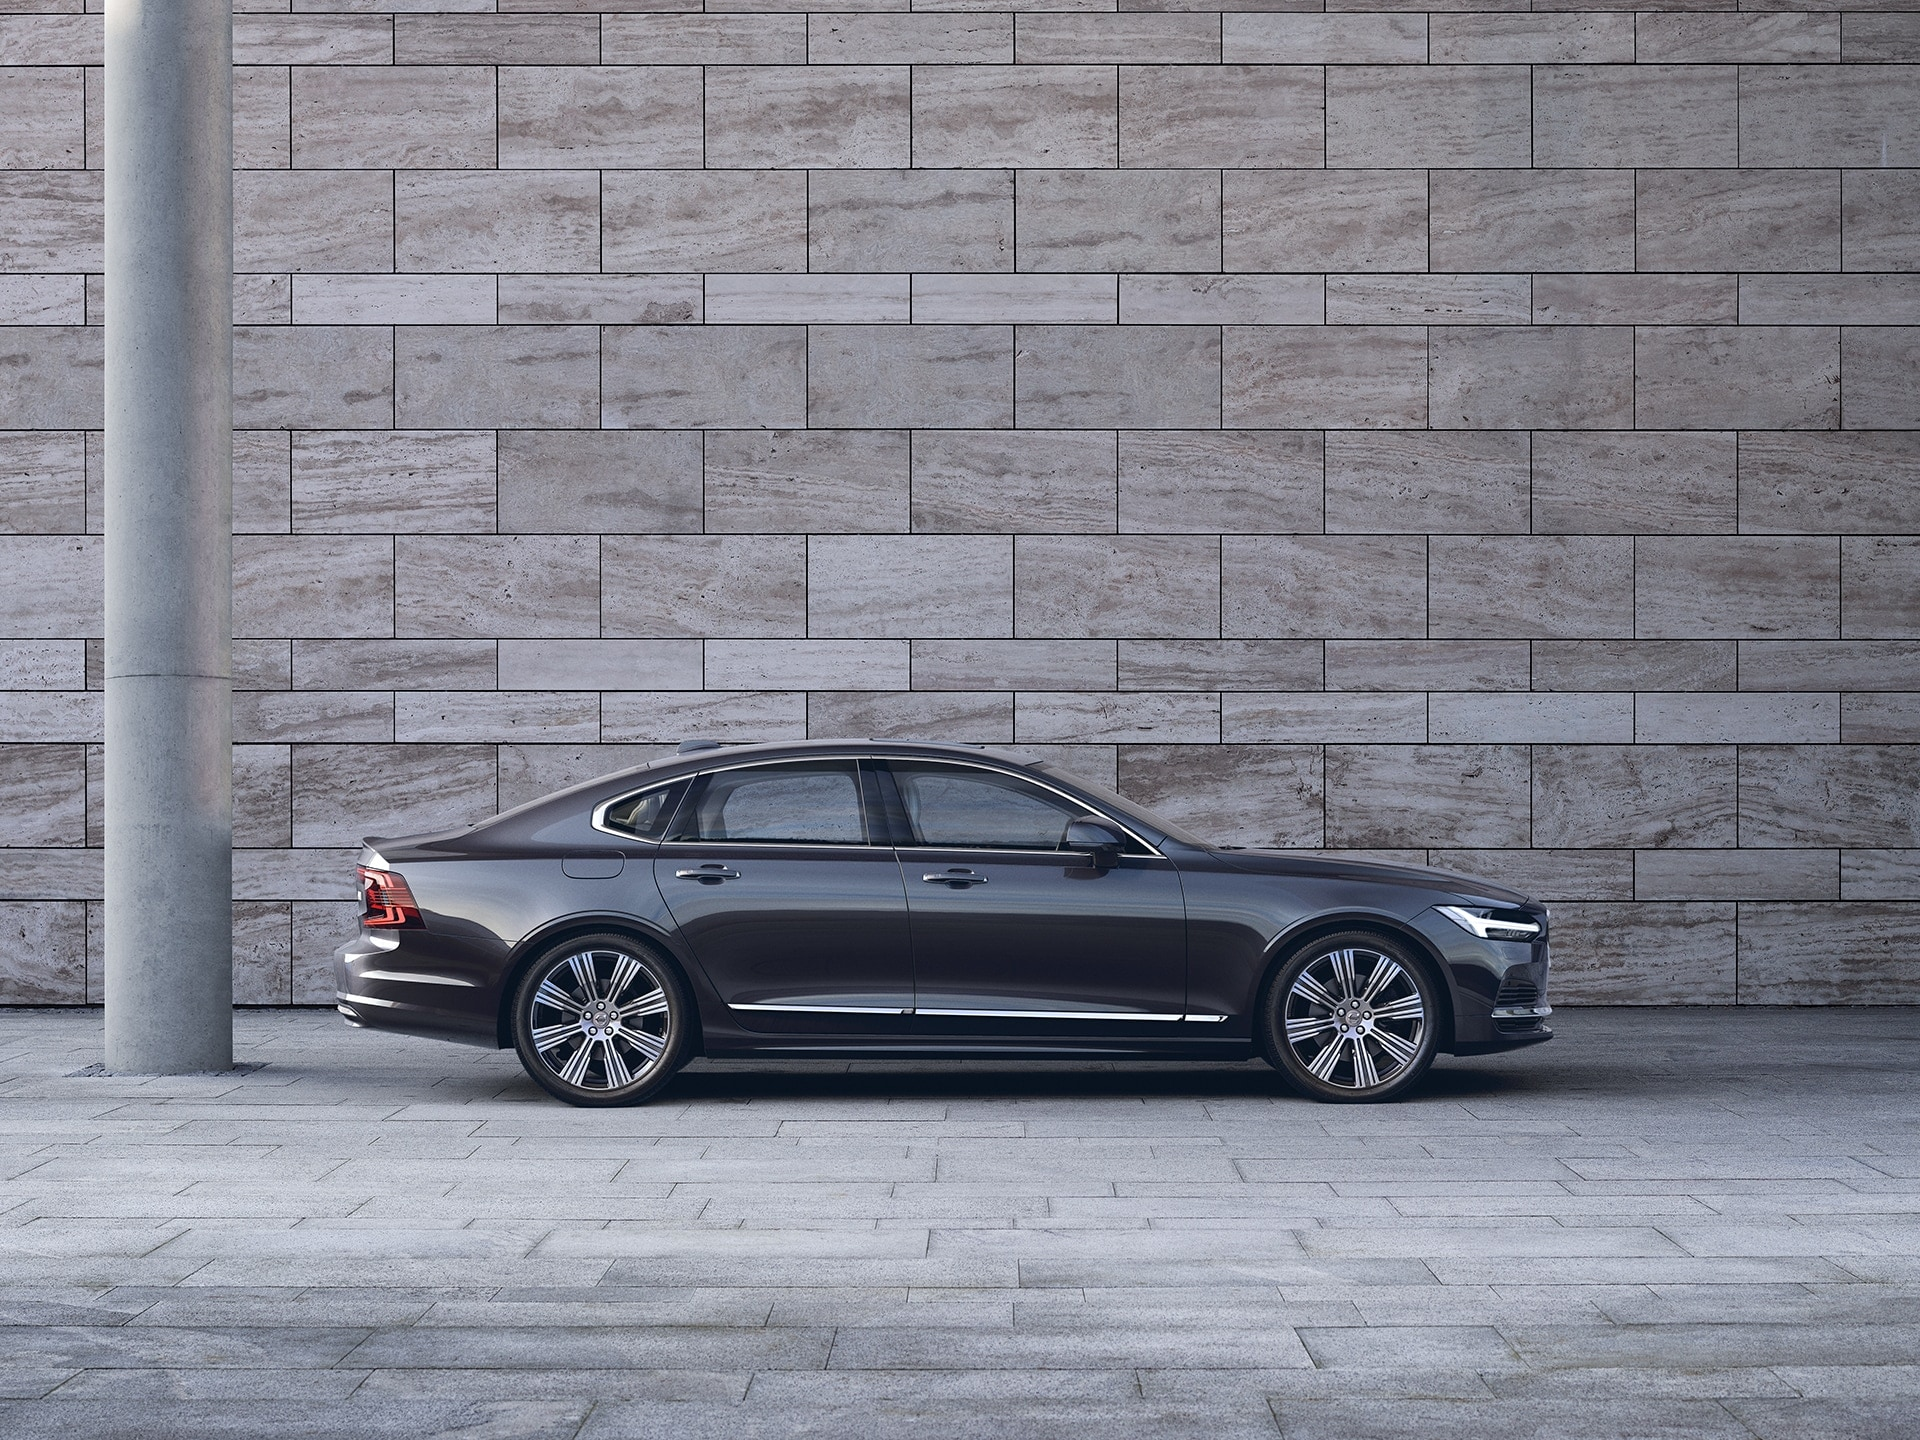 A dark Volvo S90 is parked in front of a grey wall